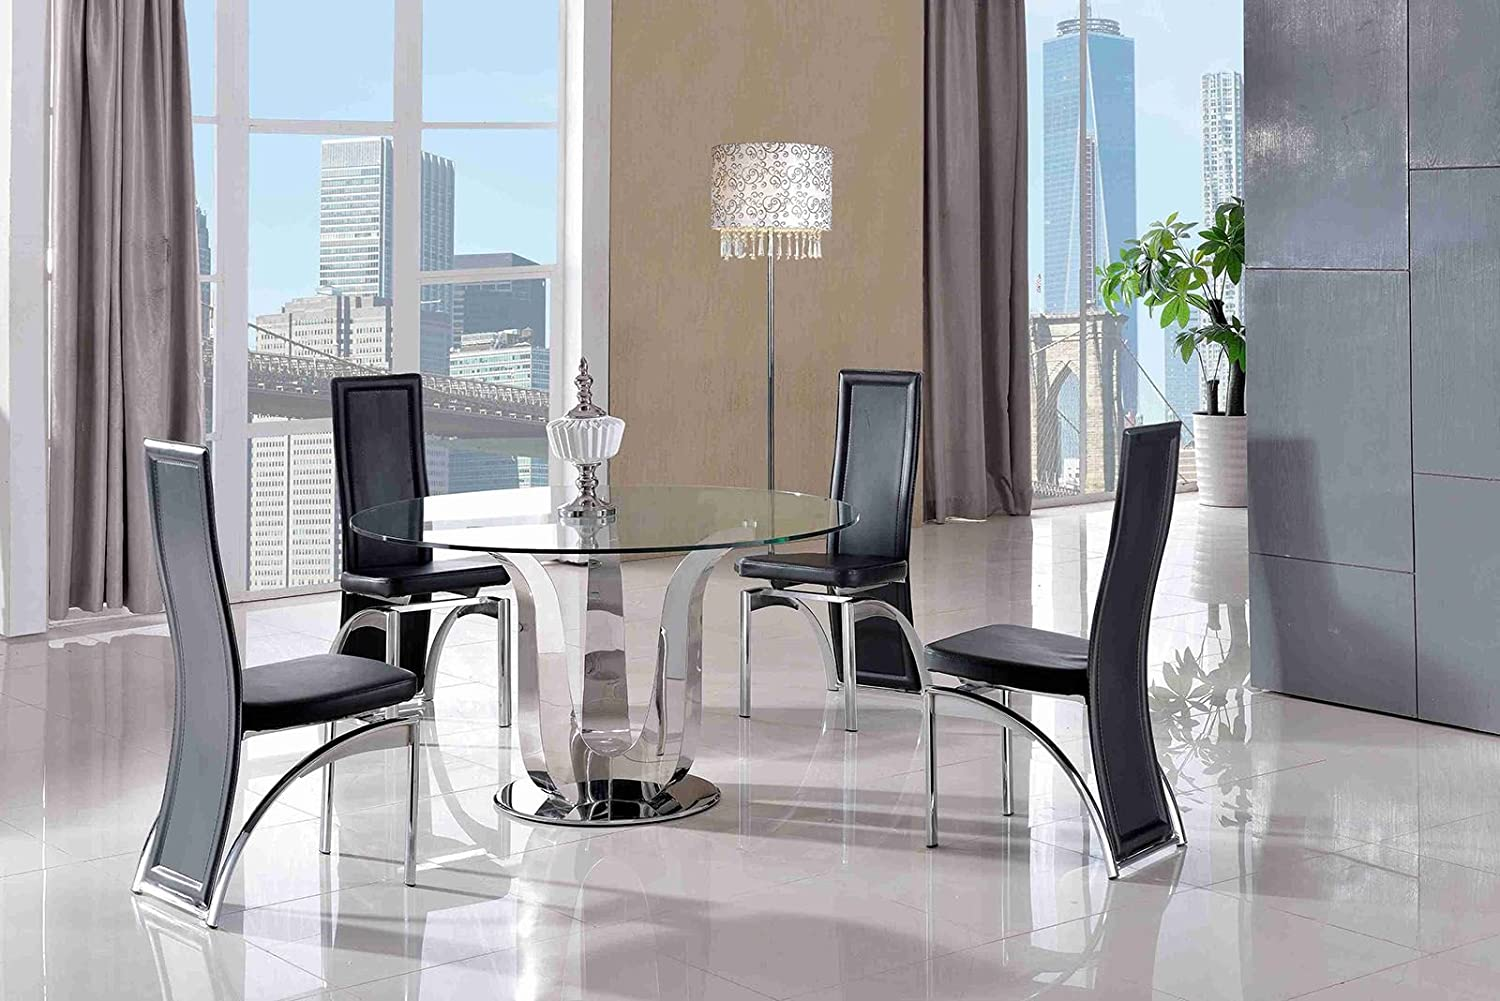 Modern furniture direct naples 130cm round steel glass dining table and 4 faux leather black chairs 130cm diameter tempered glass steel fast